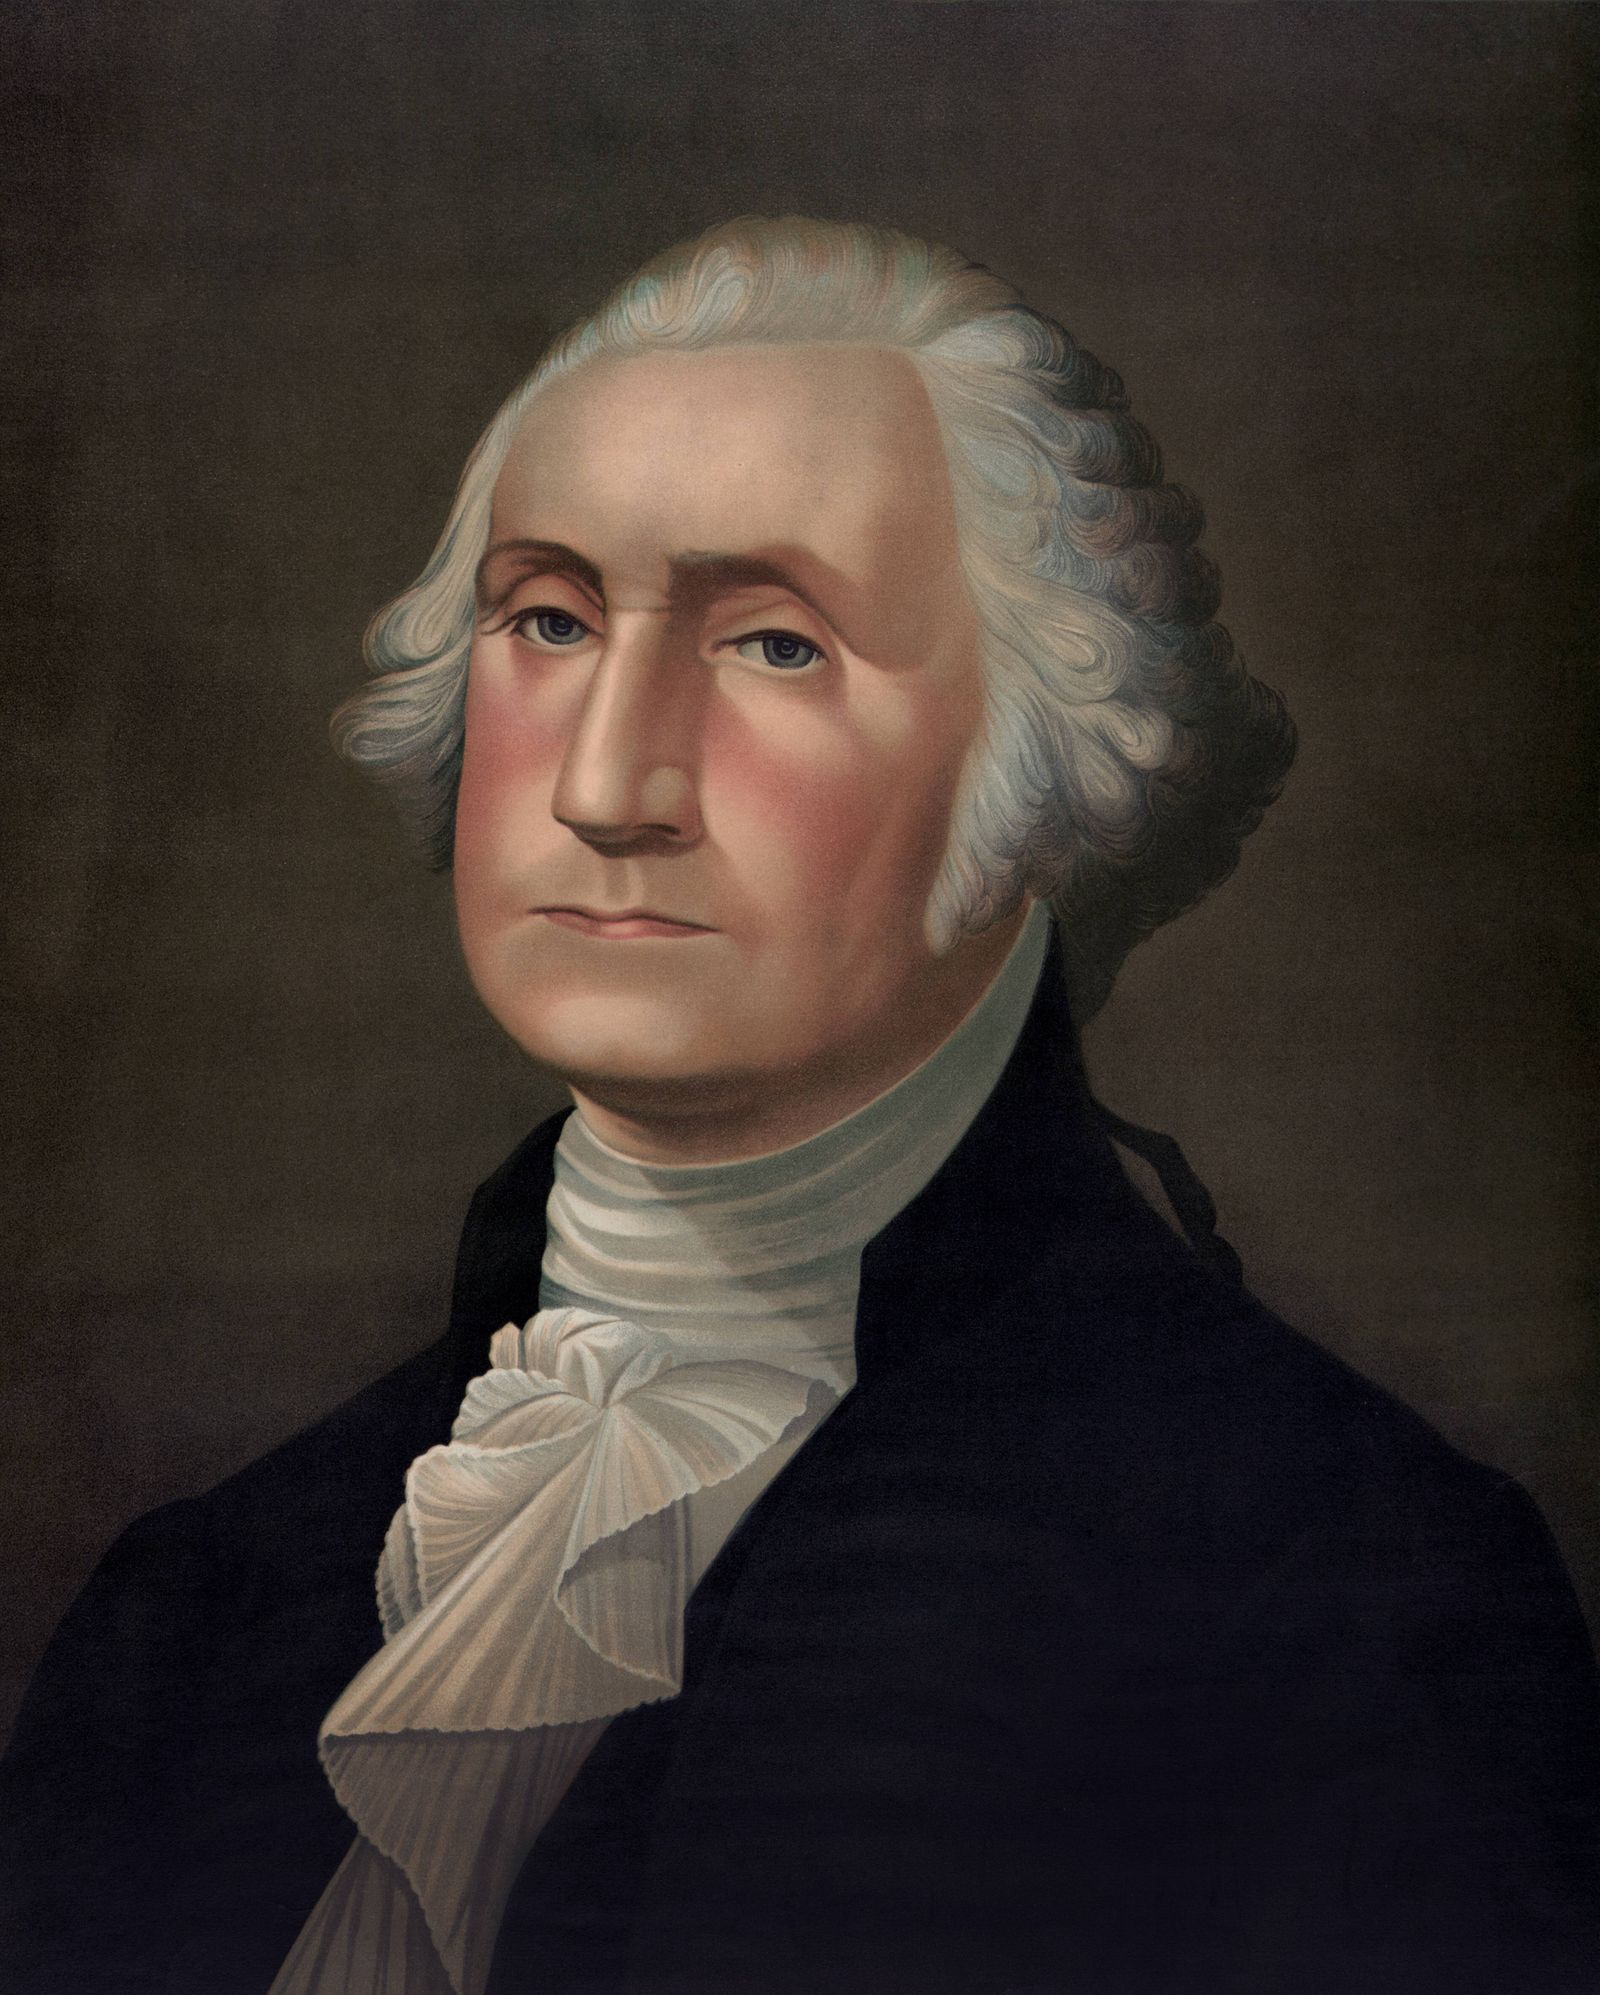 George Washington (1732-99), First President of the United States, Head and Shoulders Portrait, J. Hoover & Son, 1896 P